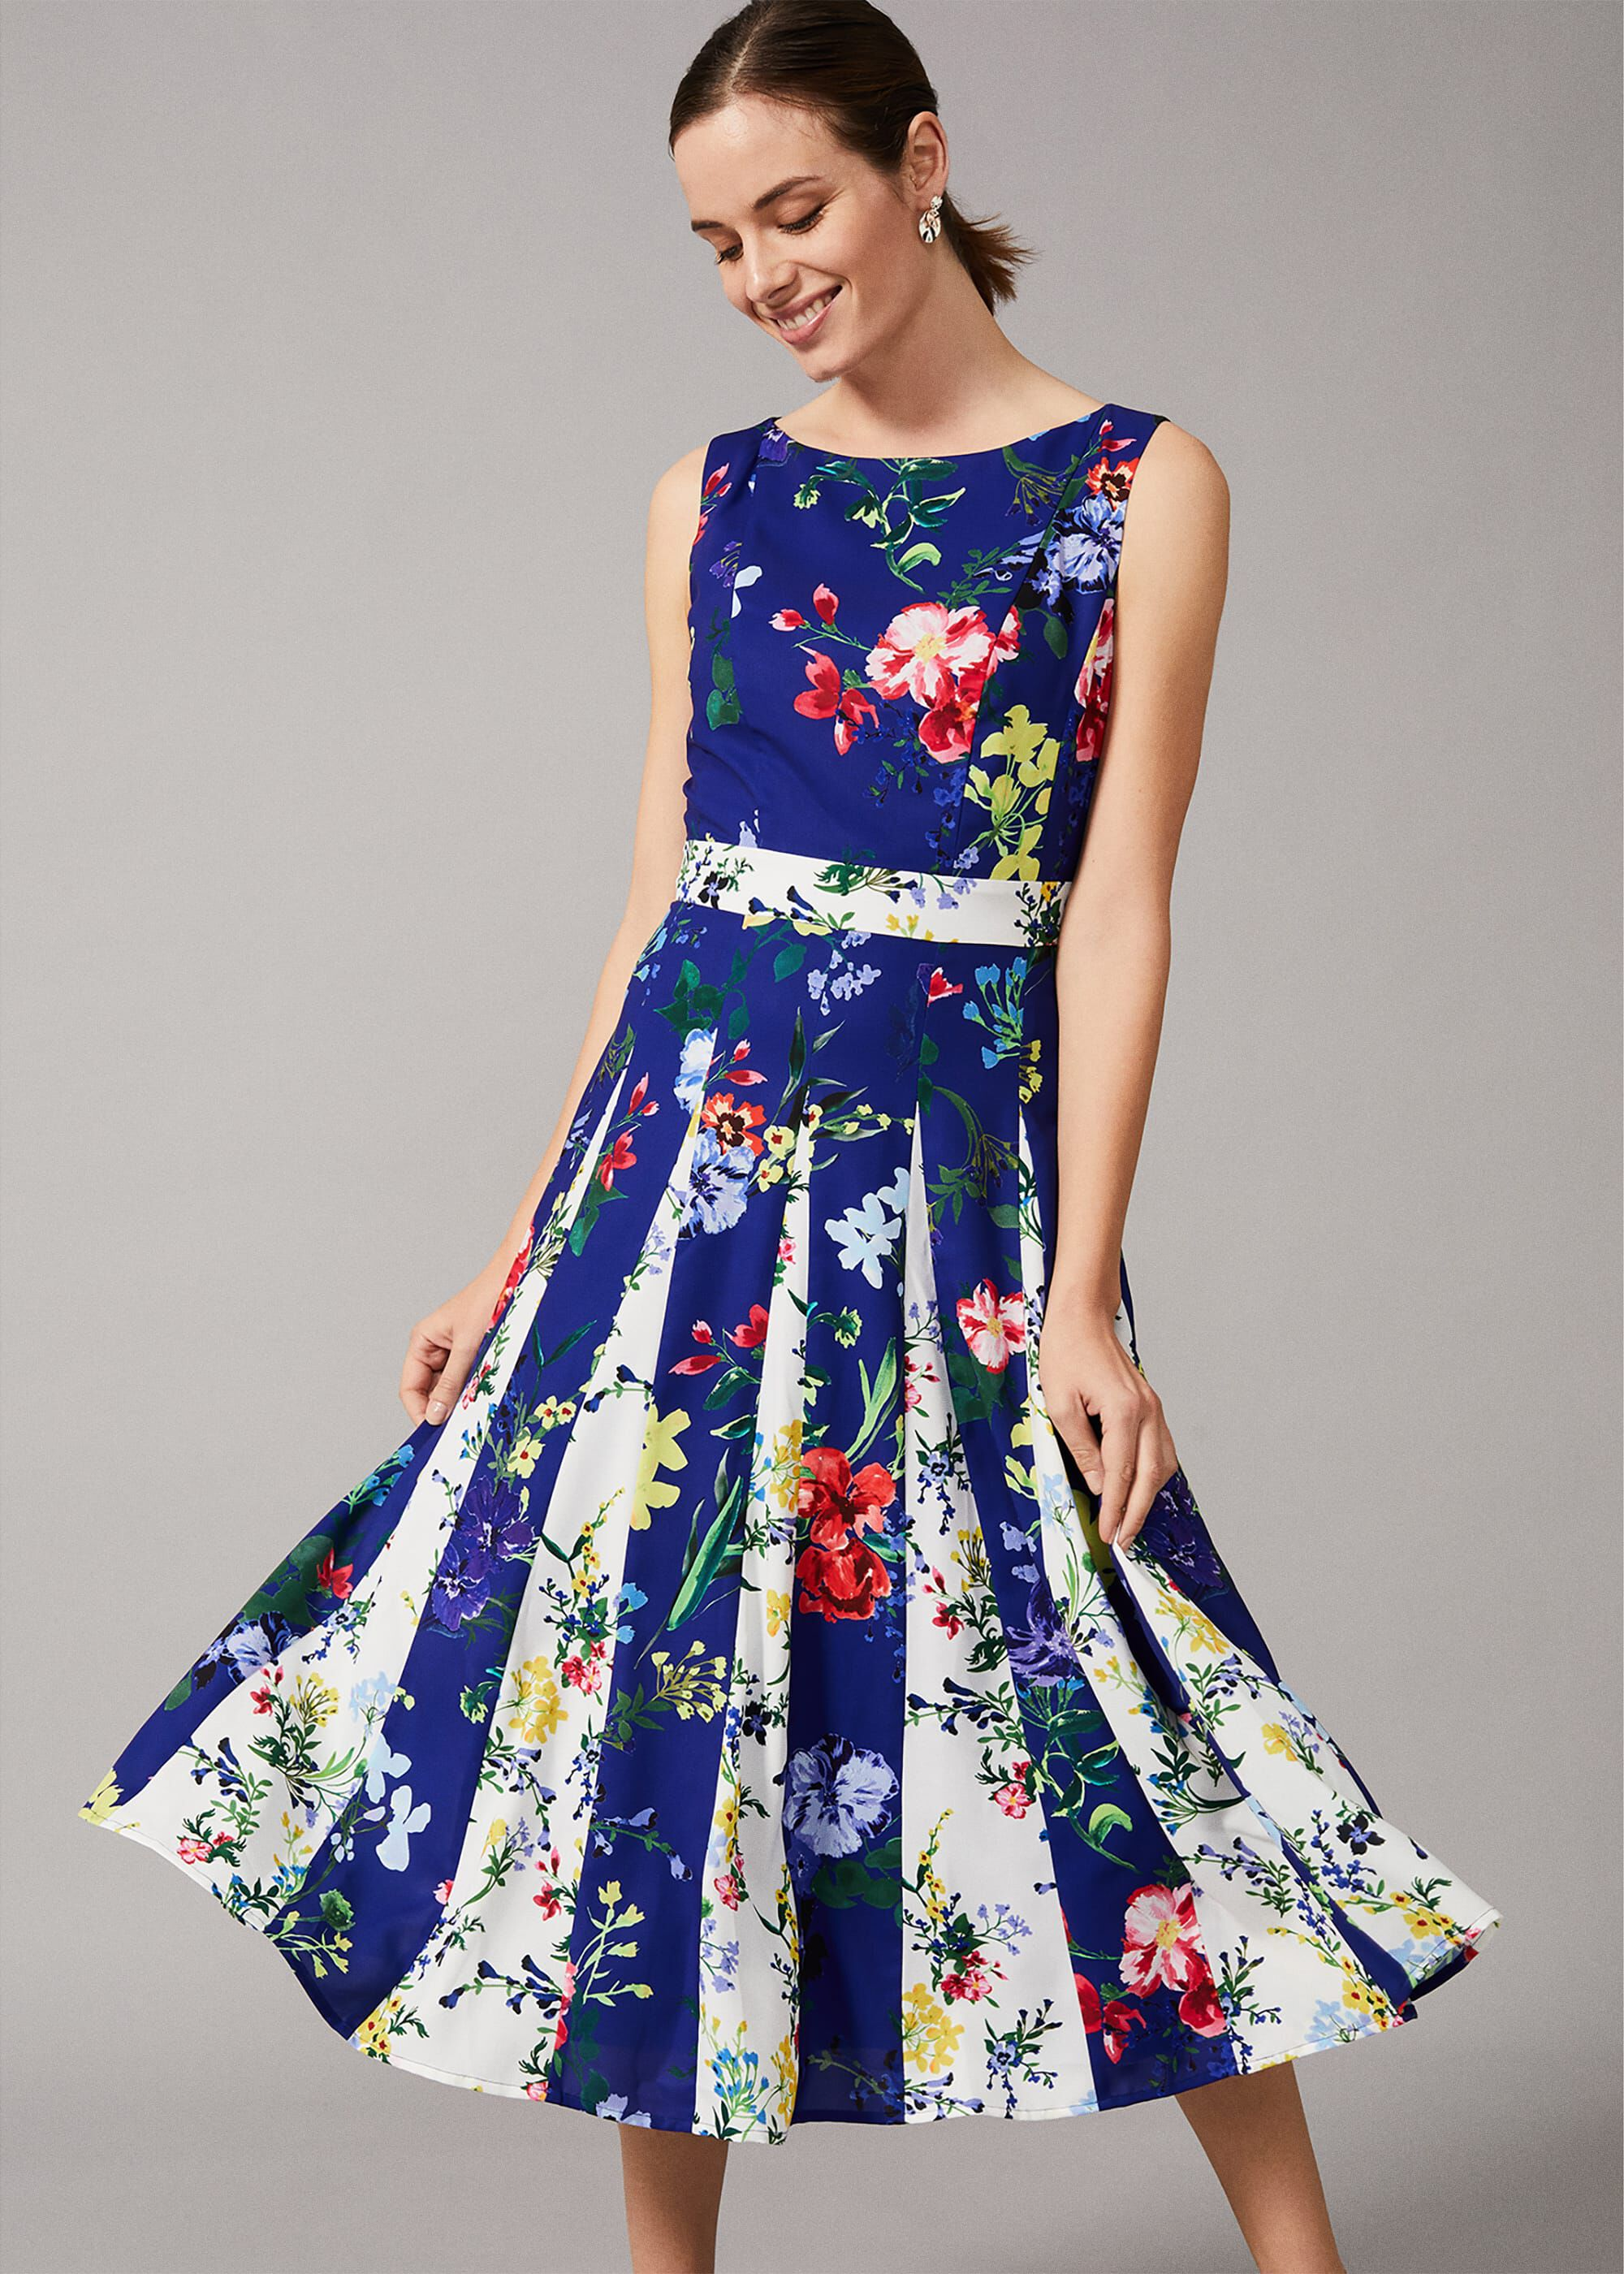 Phase Eight Trudy Patched Floral Dress, Blue, Fit & Flare